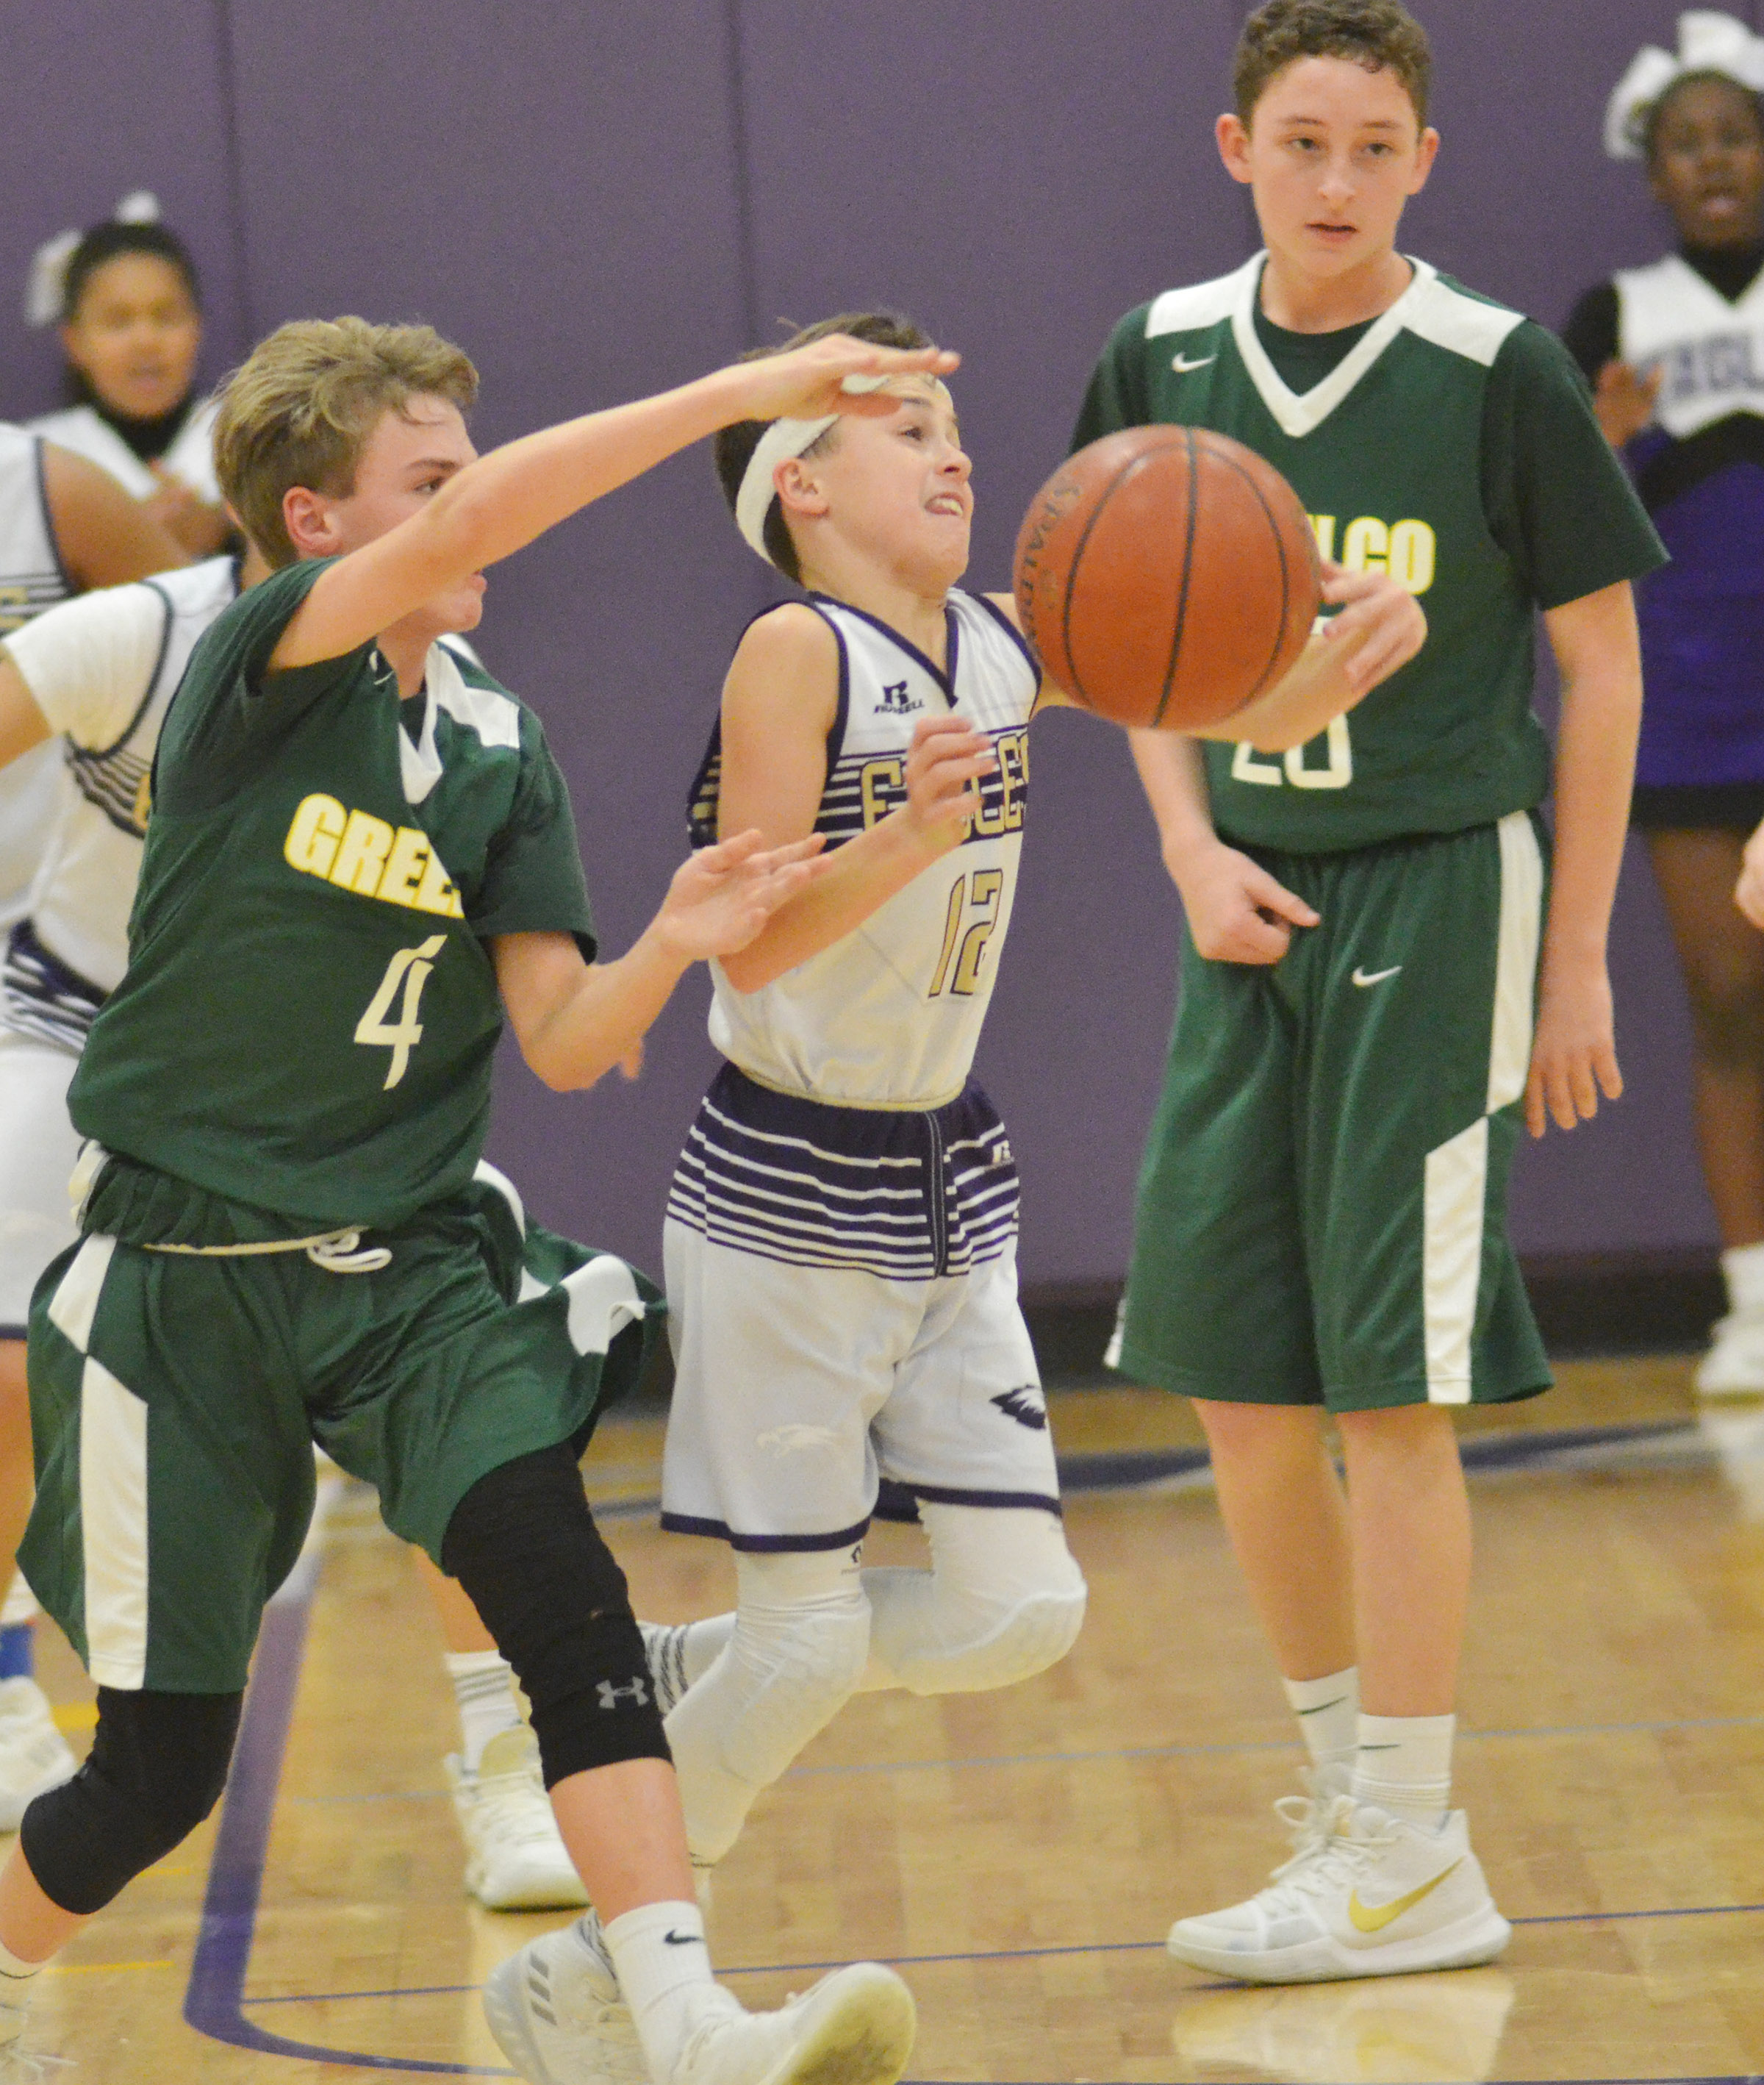 CMS seventh-grader Chase Hord tries to hold on as the ball gets away from him.